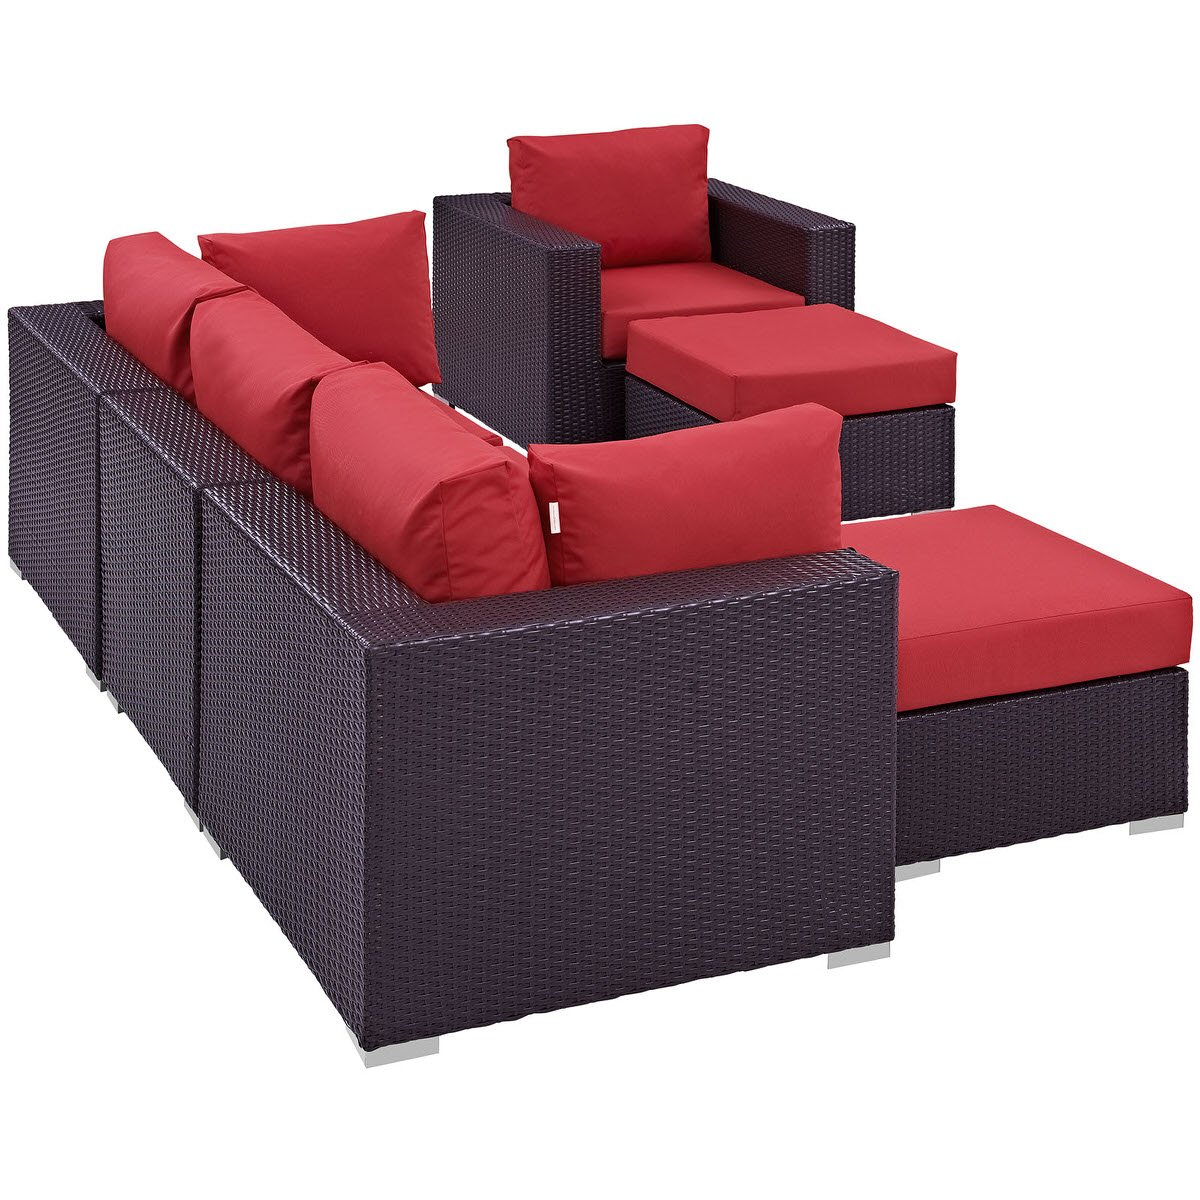 Convene 6 Piece Outdoor Patio Sectional Set Espresso Red By Modern Living